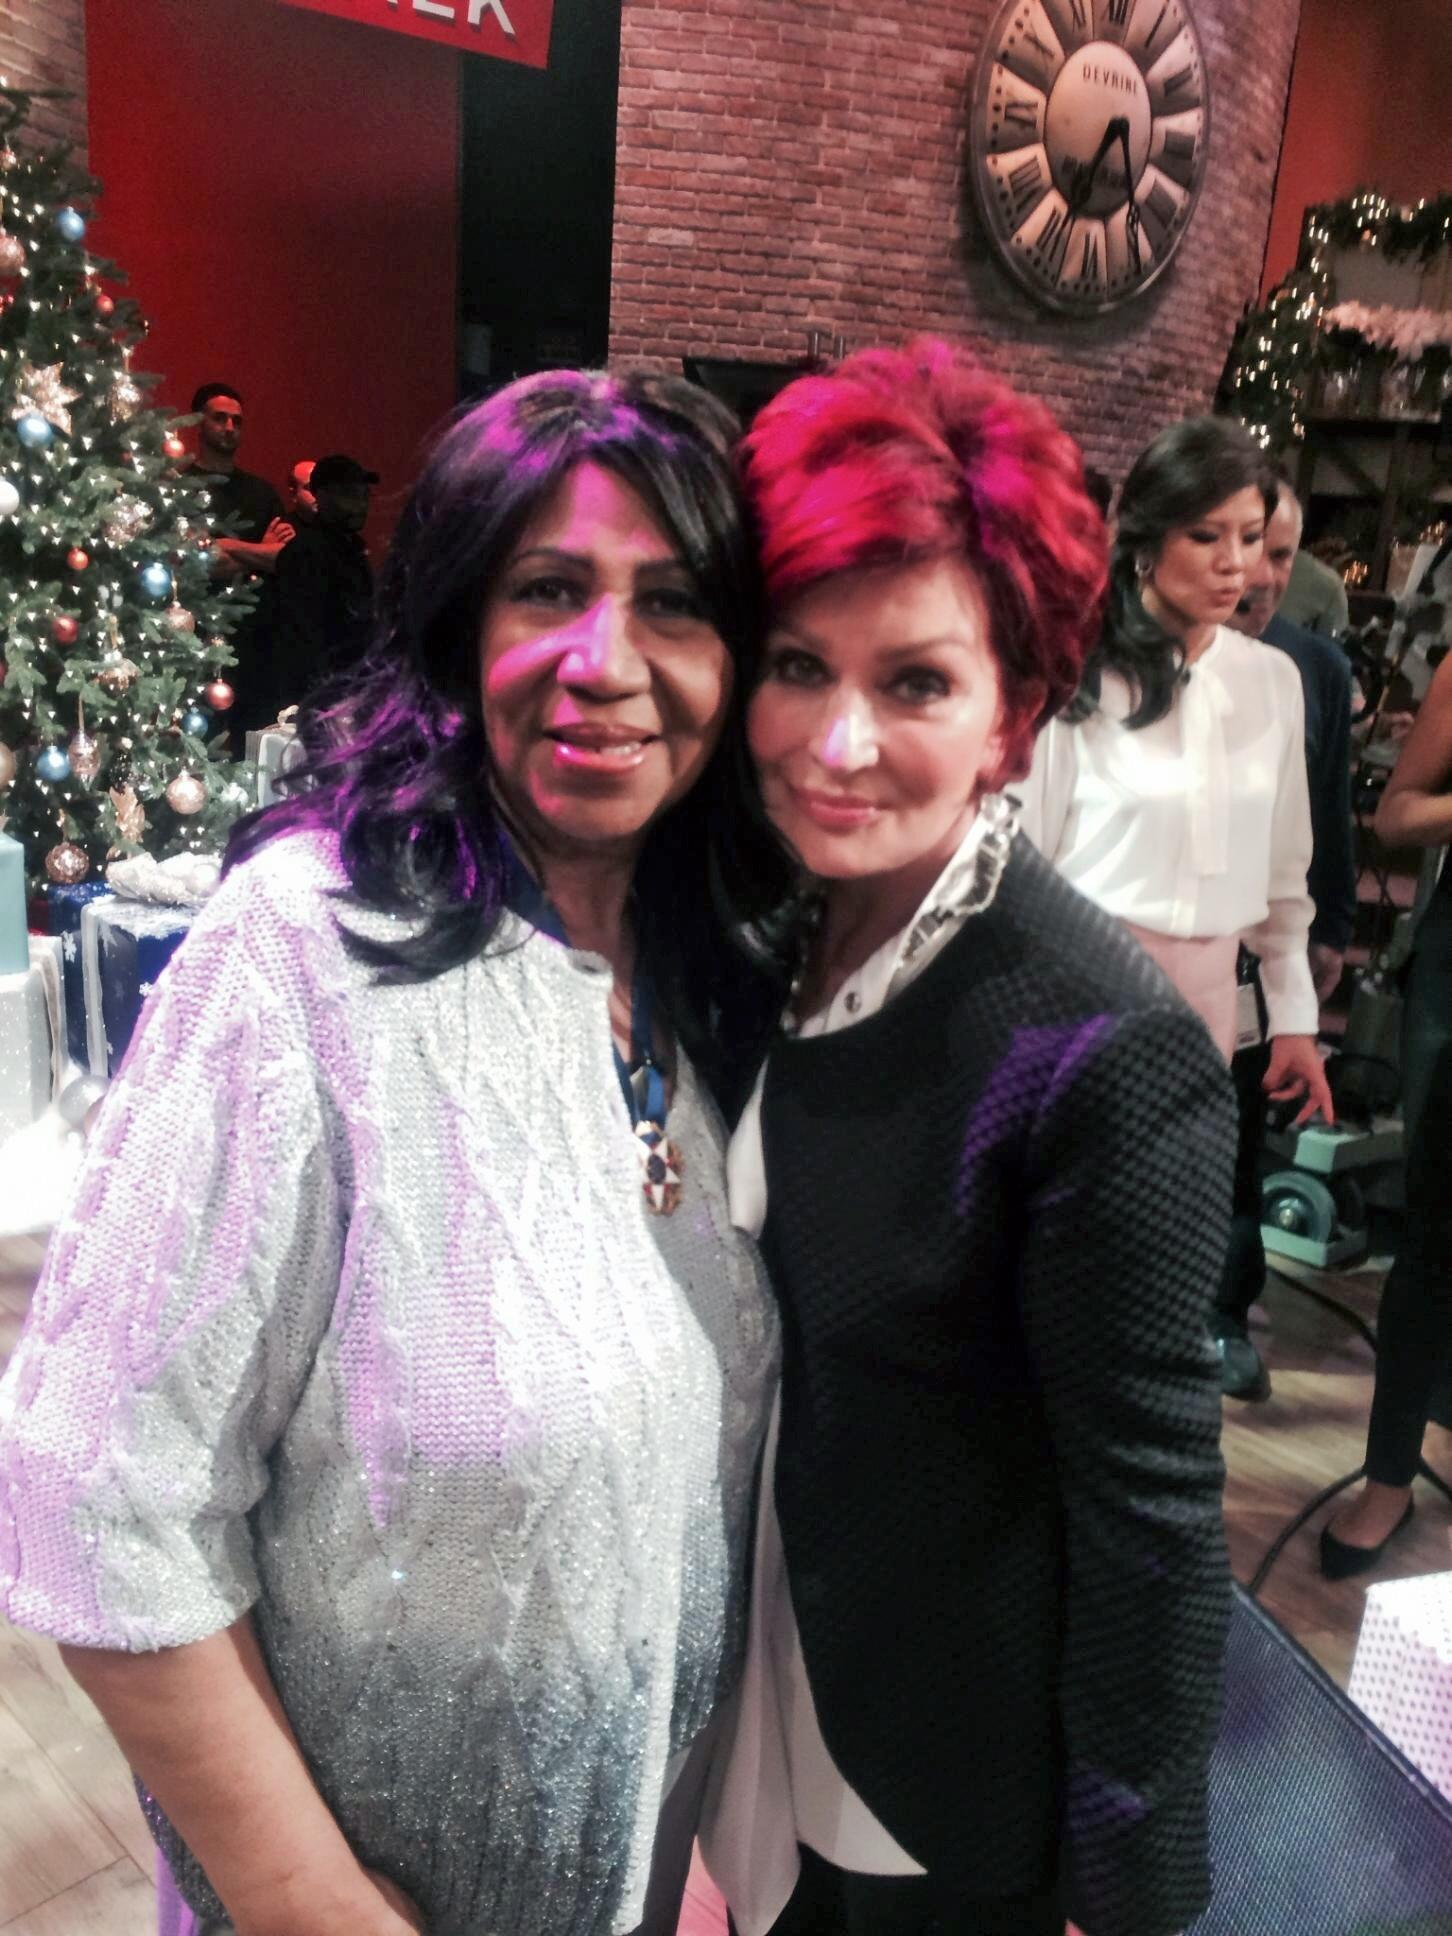 With the Queen of Soul, @ArethaFranklin! http://t.co/8peTzUOIss